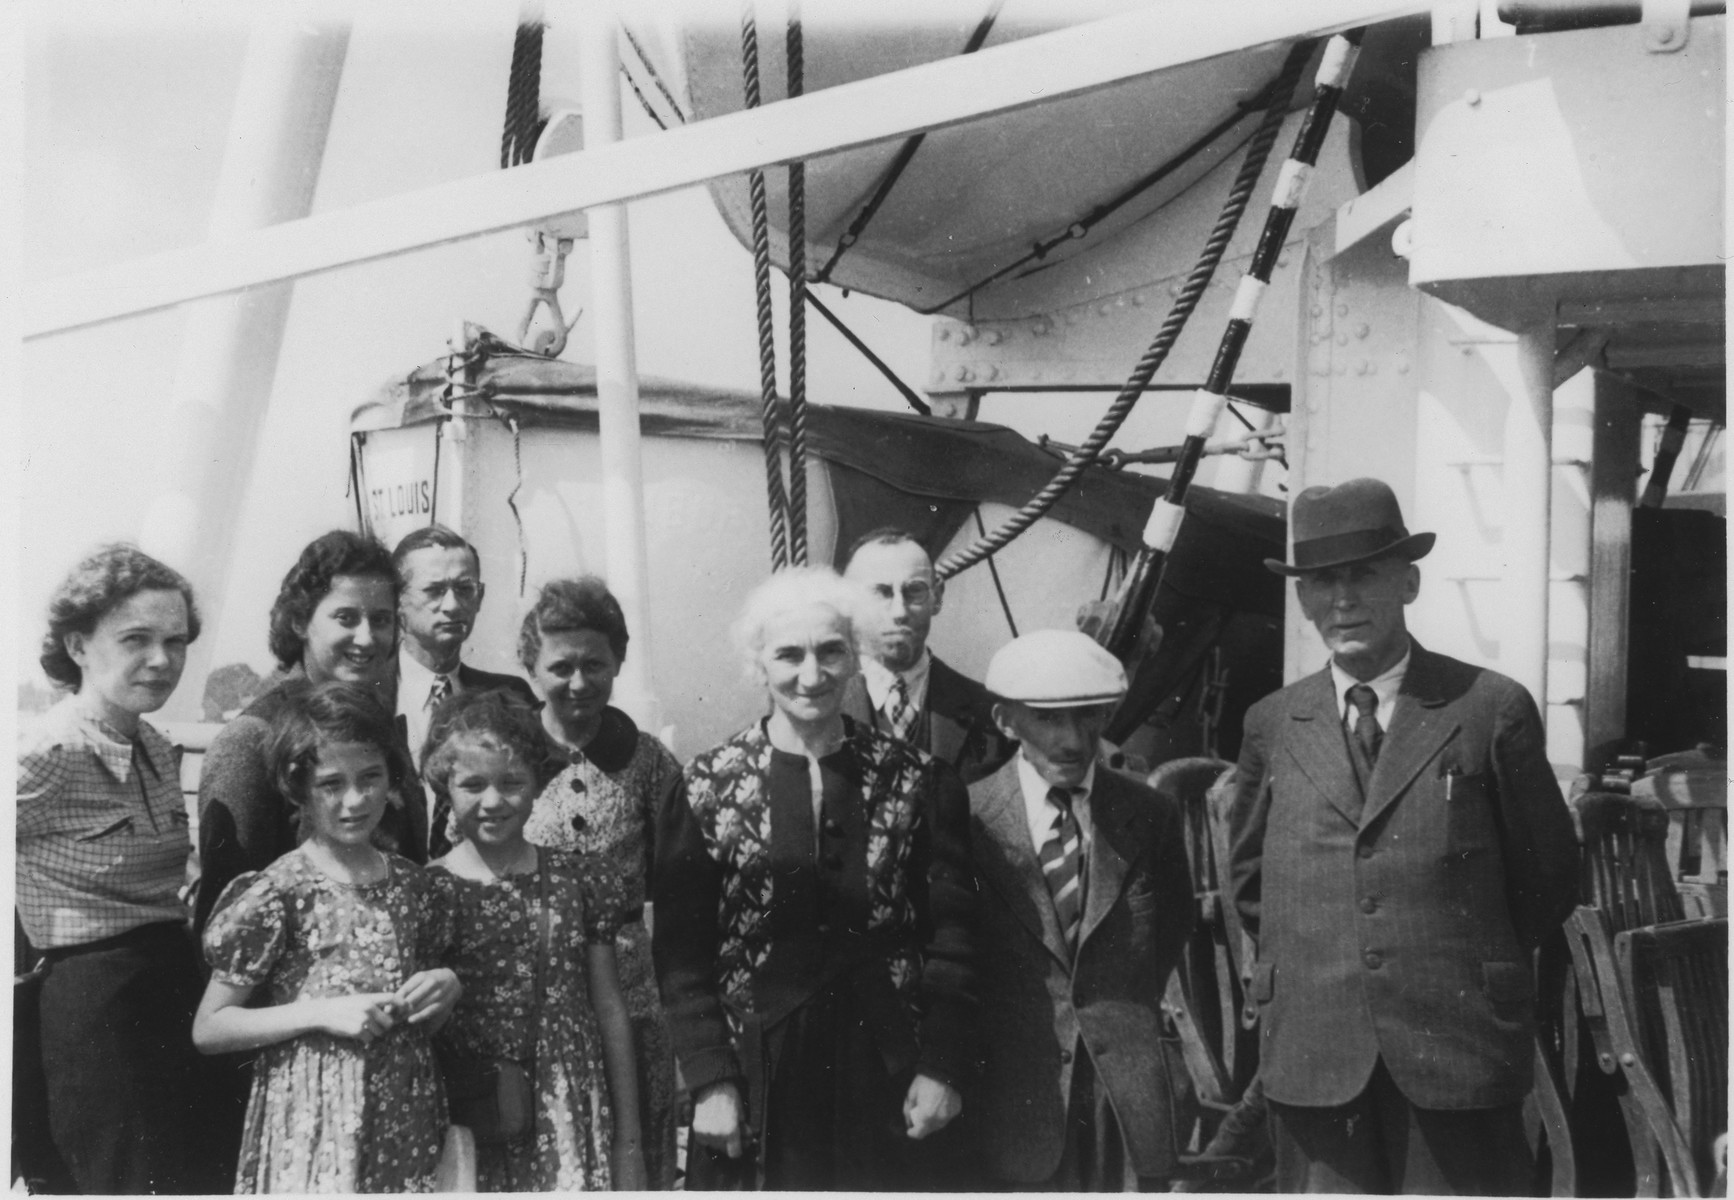 Group of passengers pose on board the MS St. Louis.